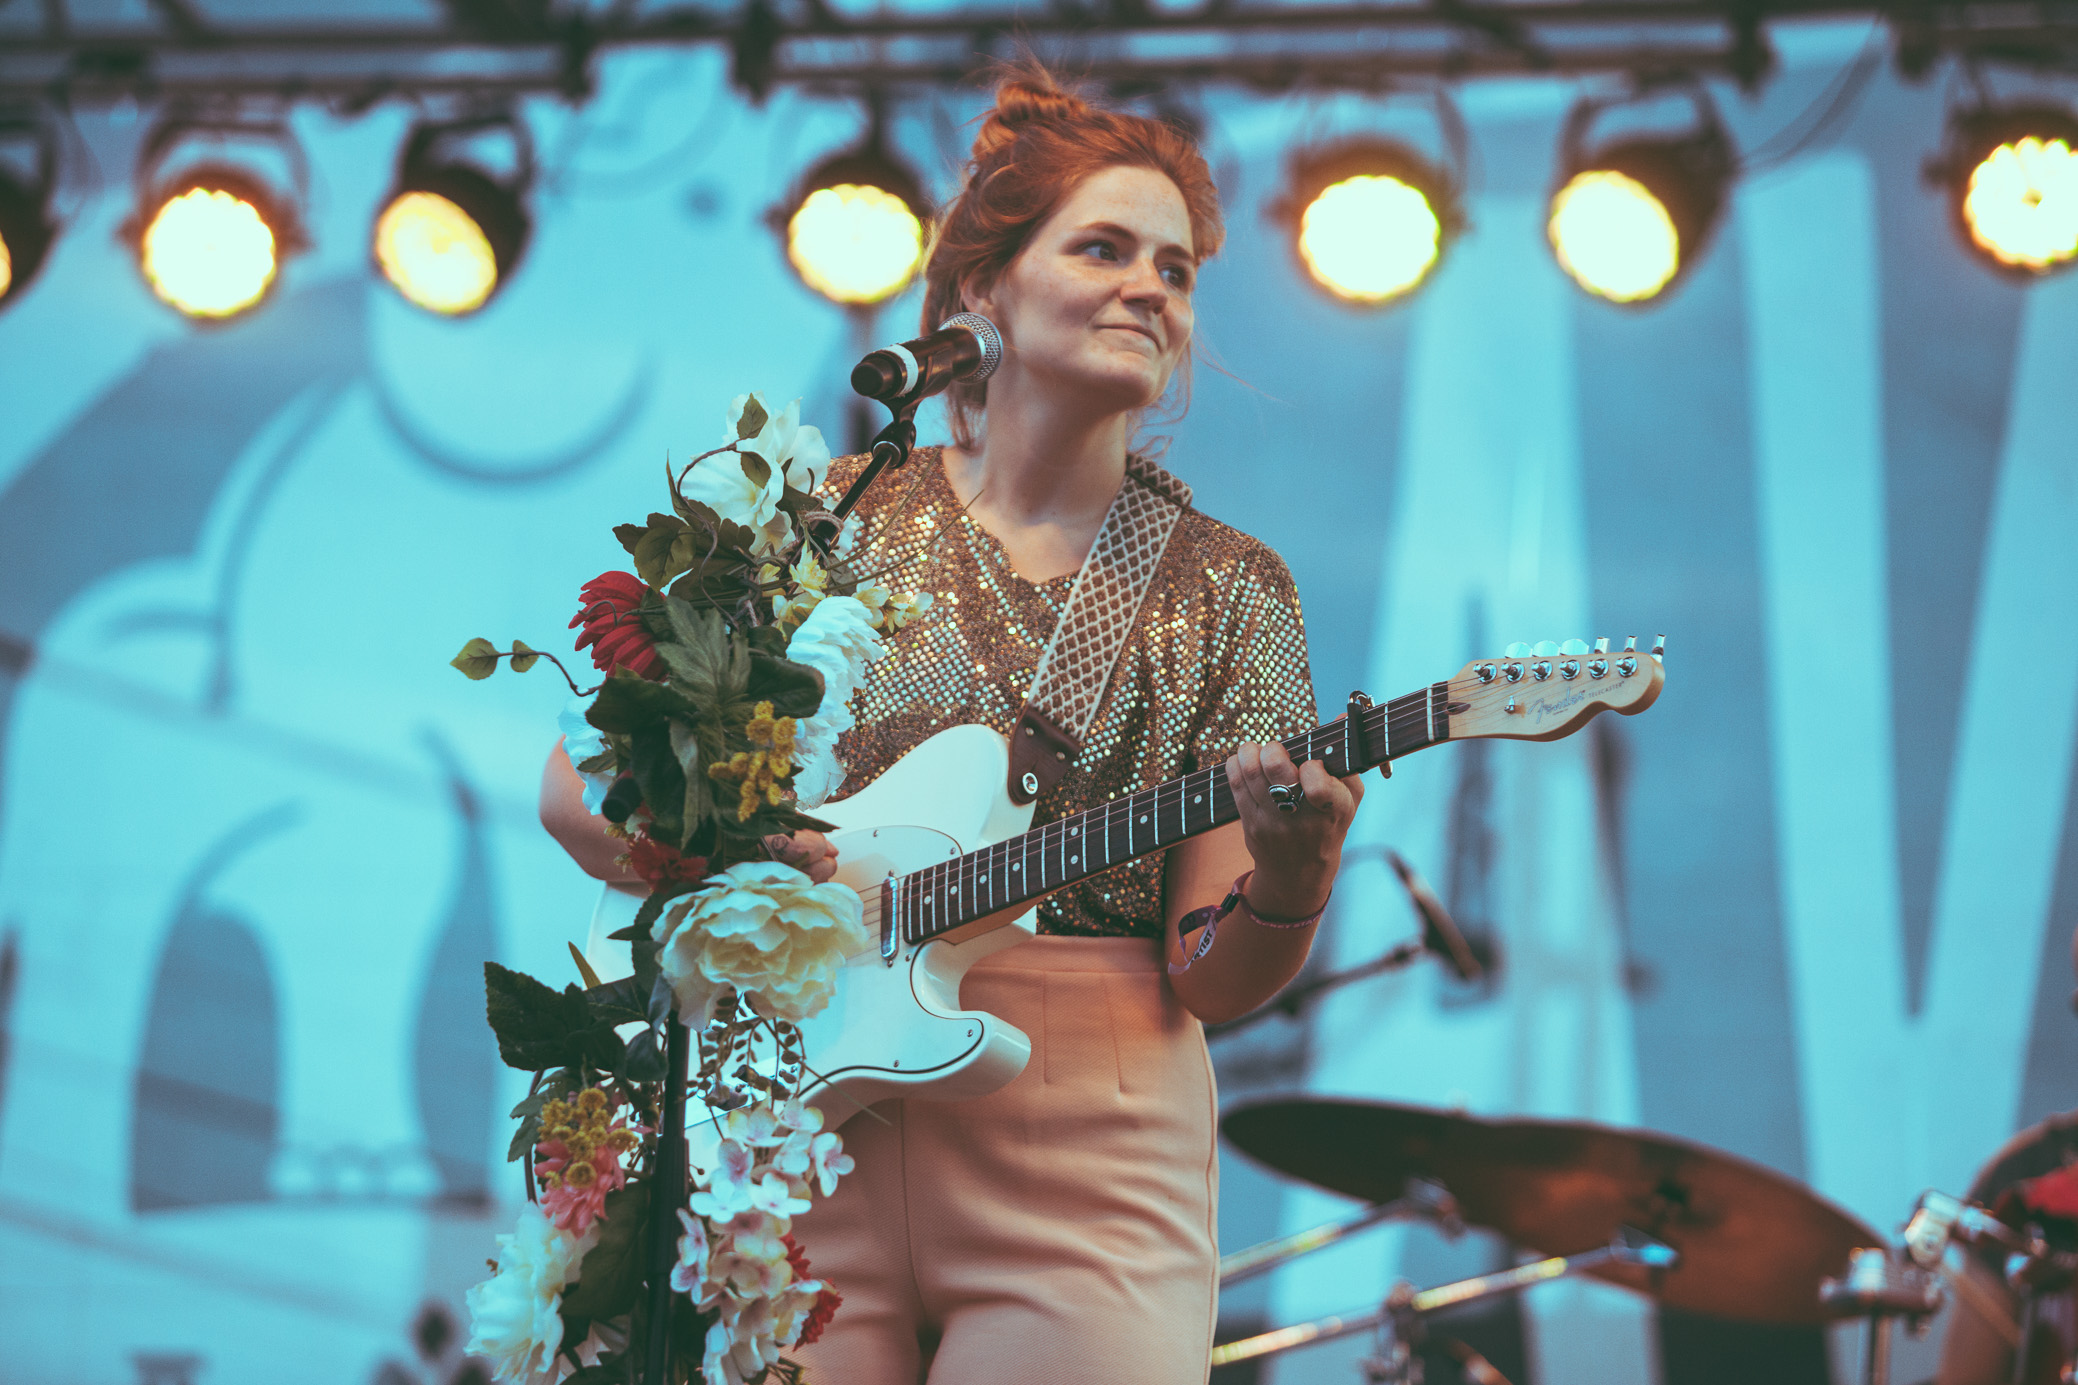 Erin Rae performs in concert at the Secret Stages Music Discovery Festival in Birmingham, Alabama on August 3rd, 2018. (Photo by David A. Smith/DSmithScenes)